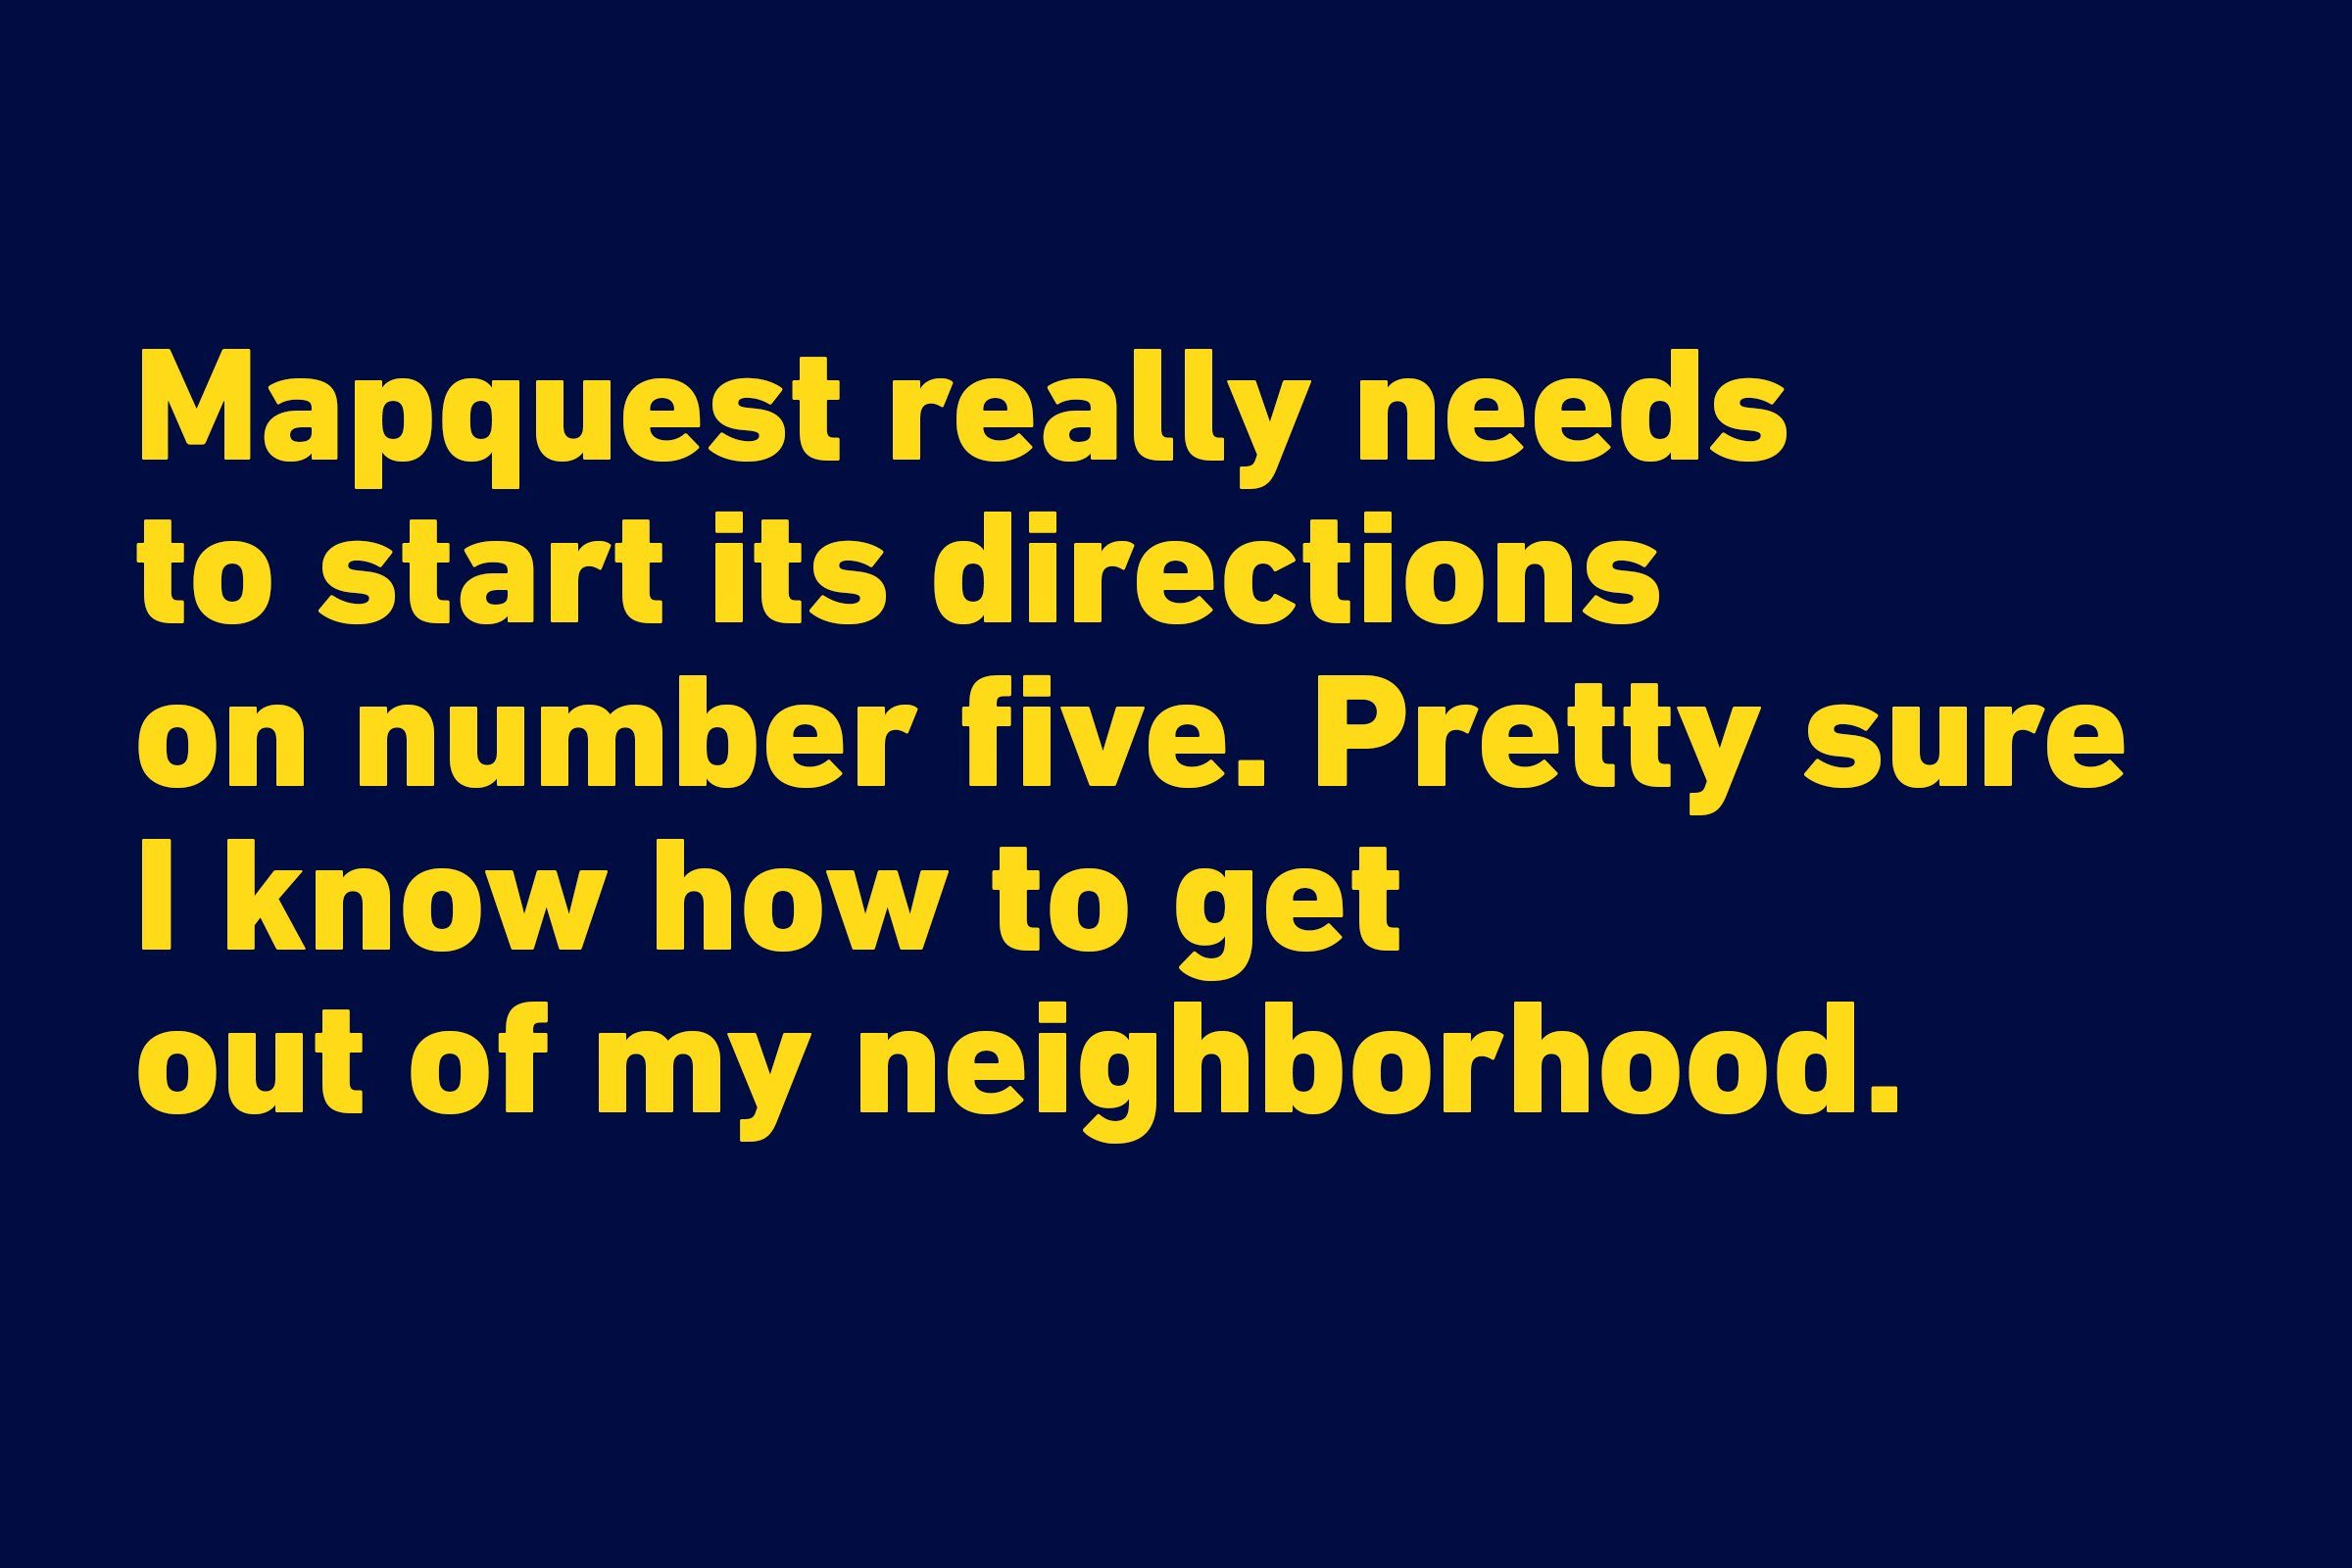 Funniest quotes of all time - Mapquest